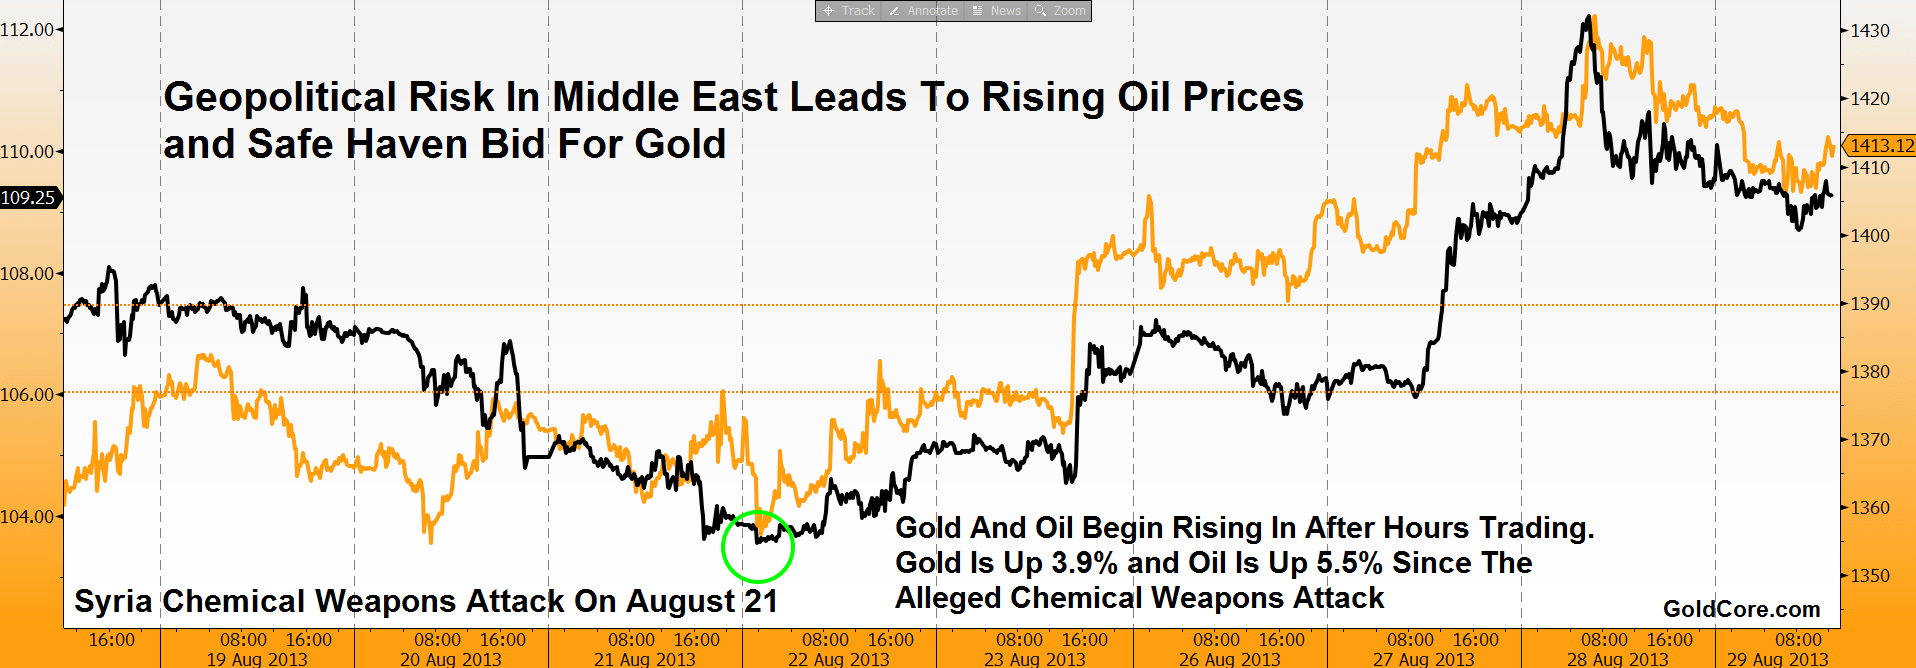 gold since august 21 chemical attack in syria